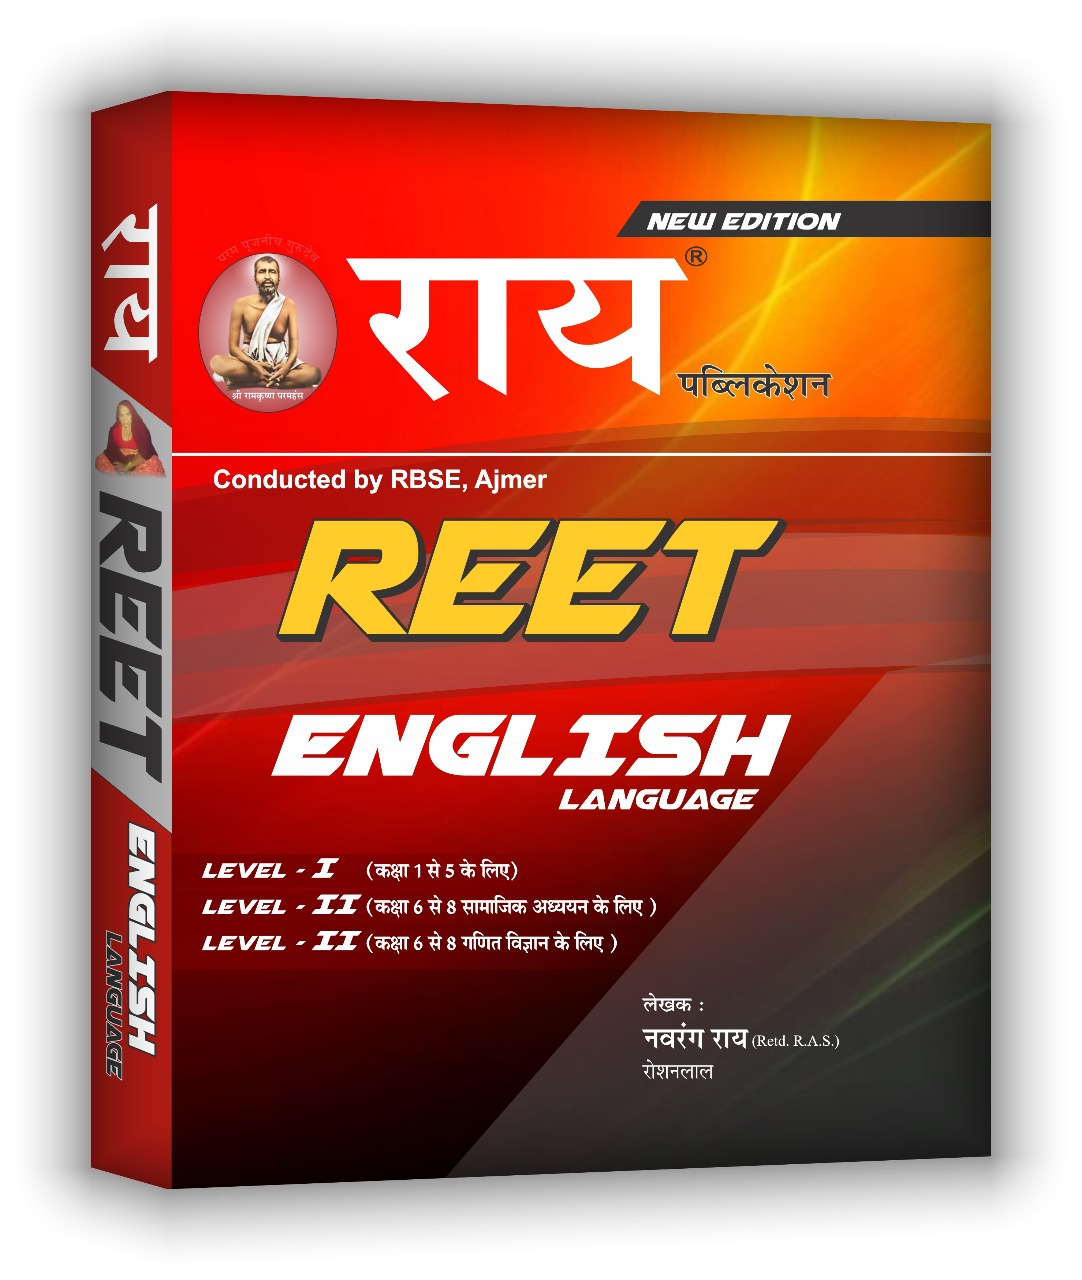 REET English Language with Method for Level 1(1-5) and Level 2(6-8) ( REET Bhasha 1 avem Bhasha 2 English ) (REET 2020 )